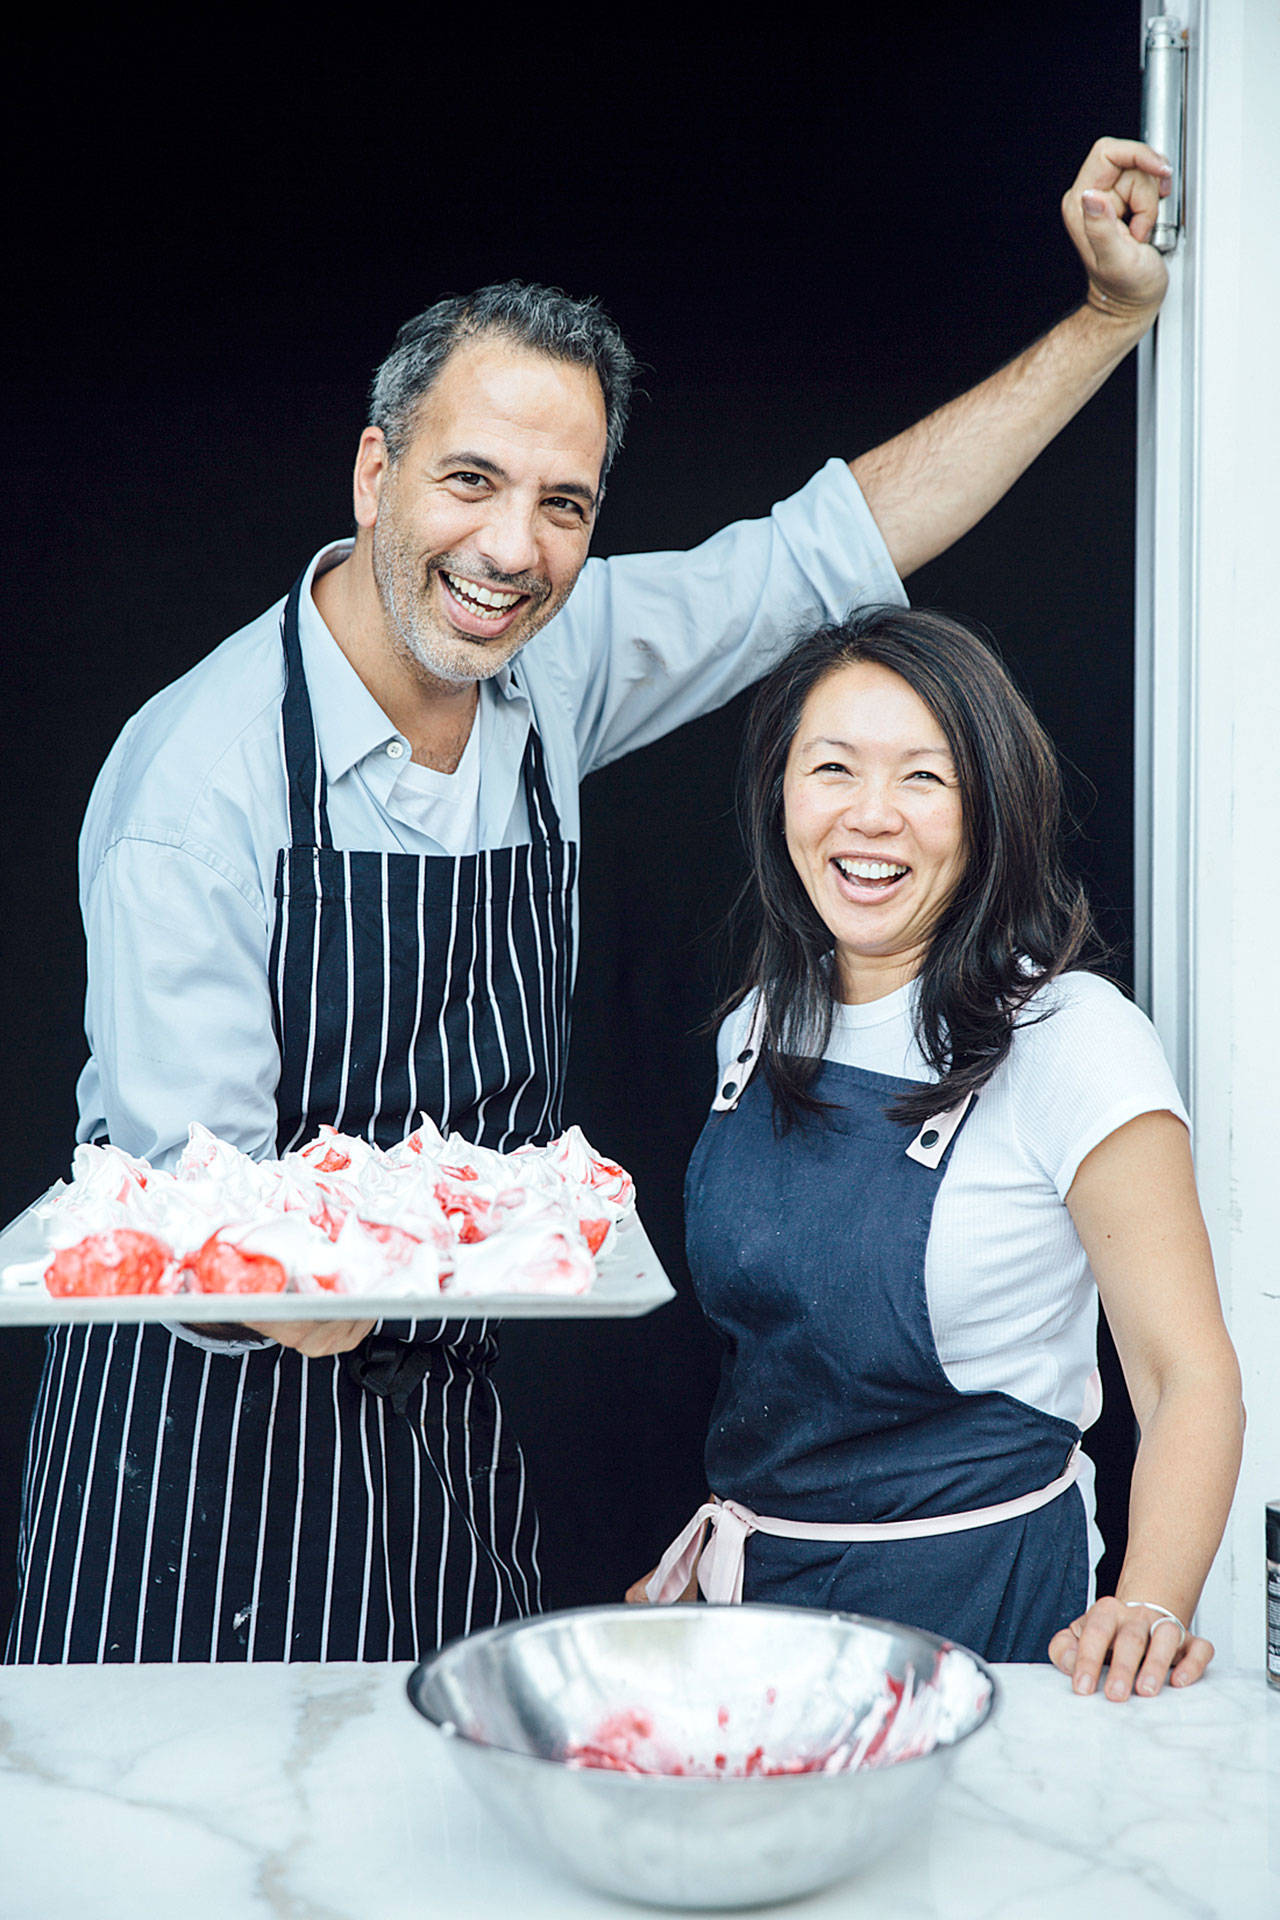 Yotam Ottolenghi and Helen Goh are the authors of this sweet cookbook. (Peden + Munk photo)